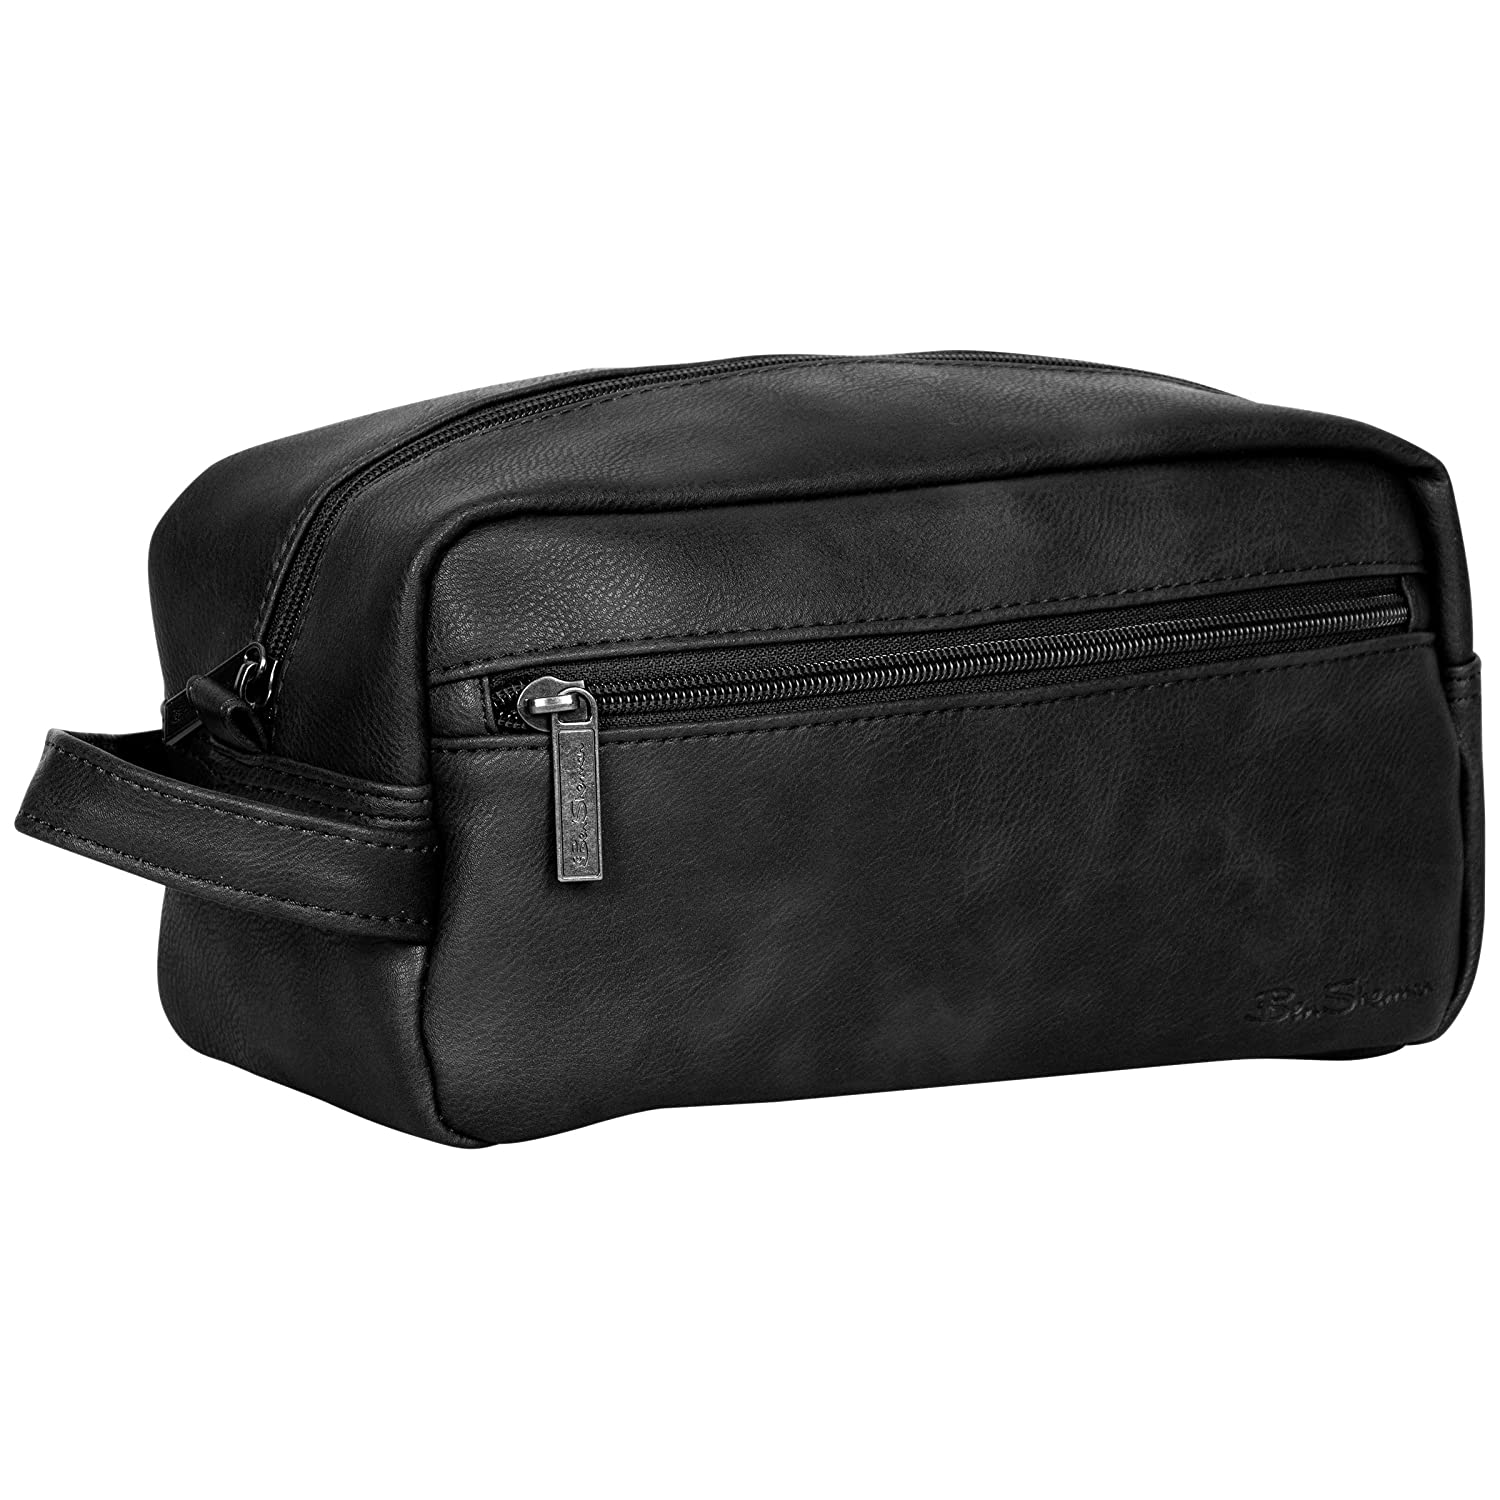 Ben Sherman Noak Hill Collection Vegan Leather Toiletry Travel Kit, Black, Single Compartment